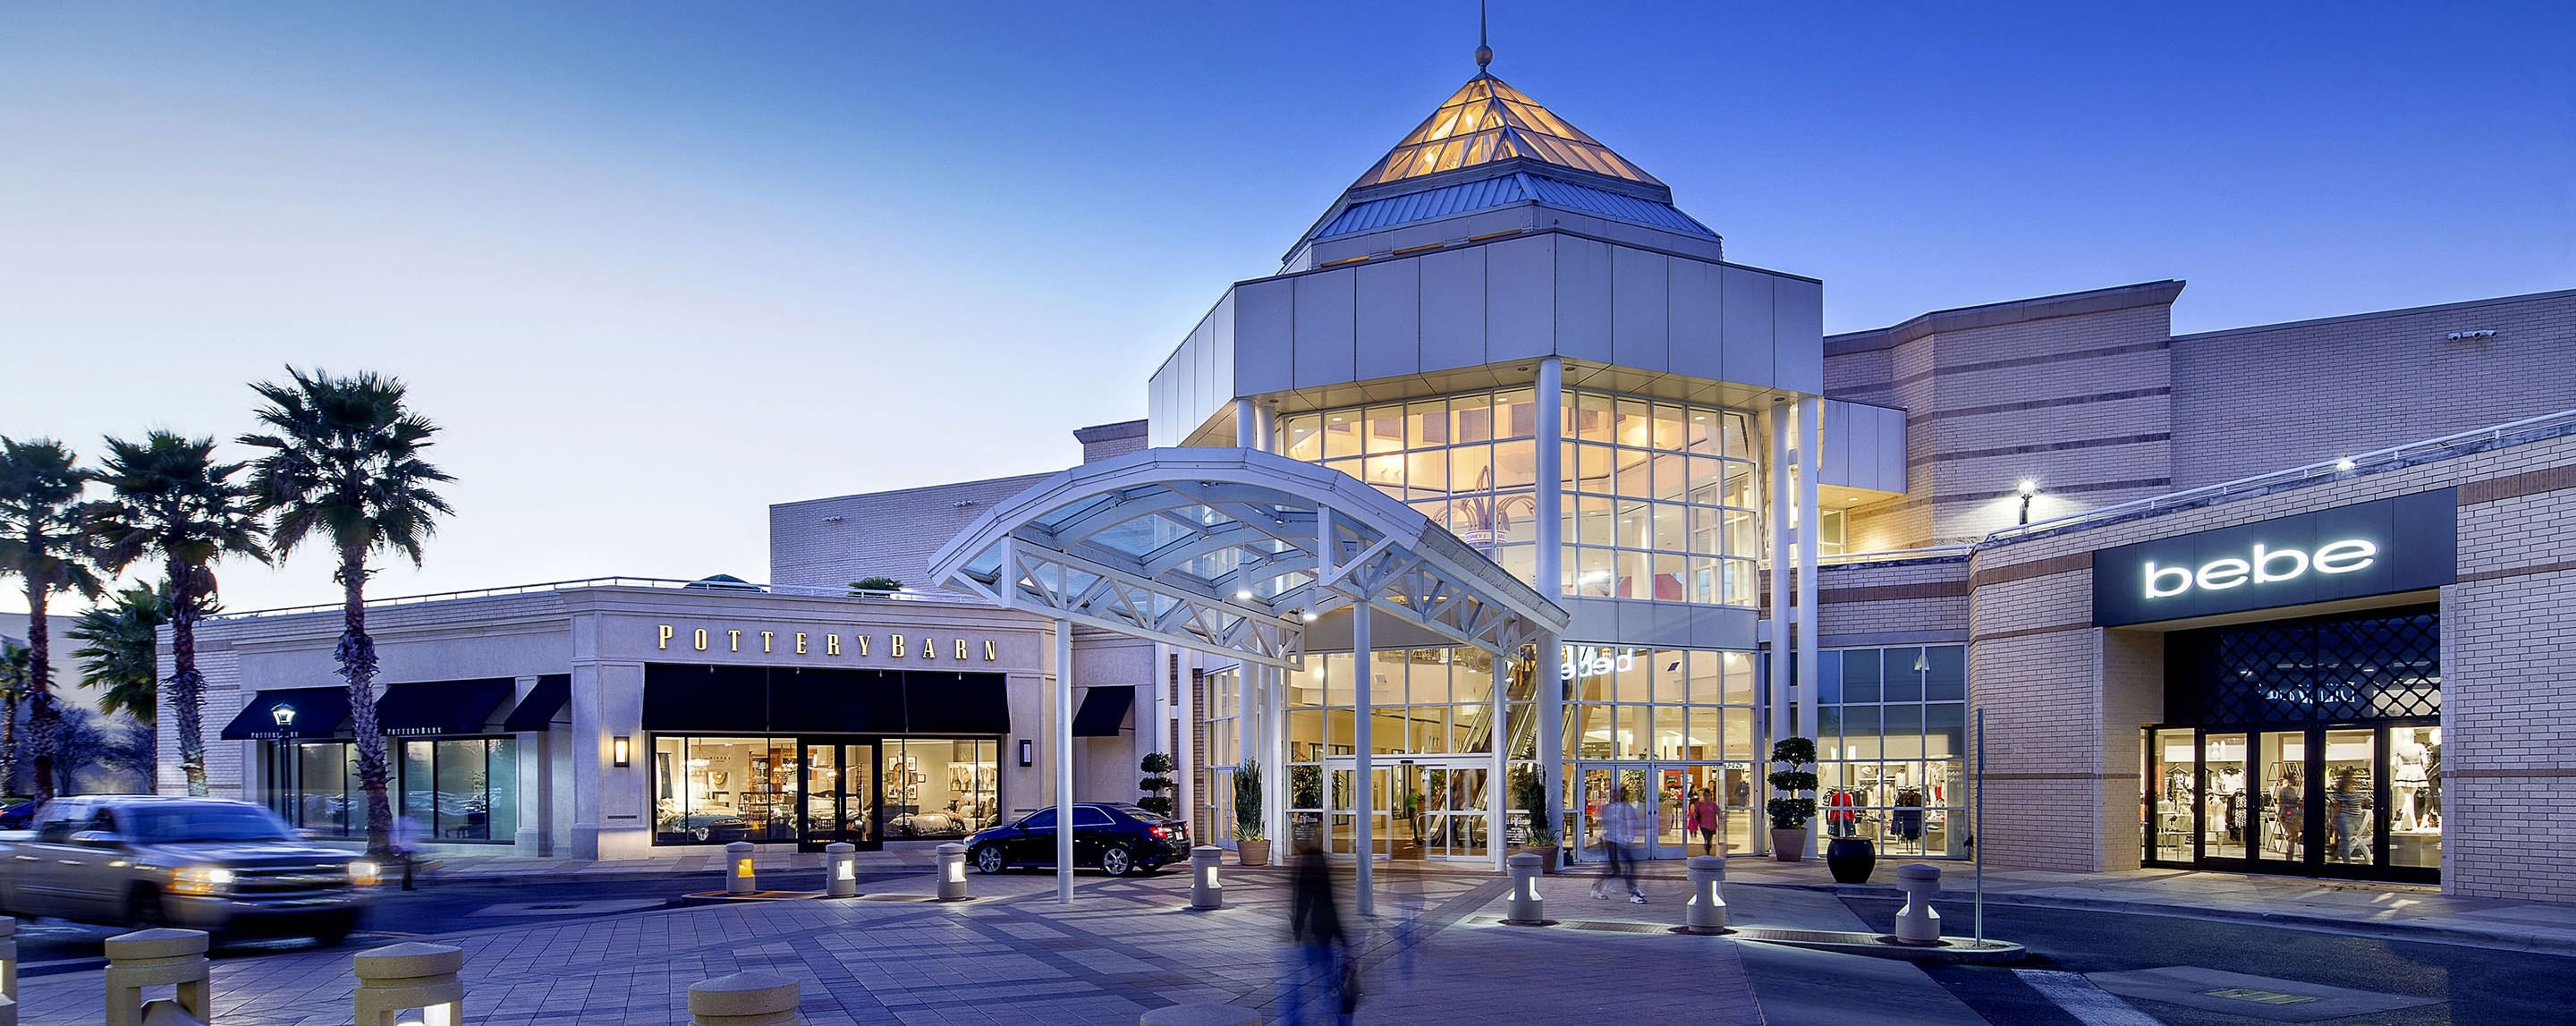 At dusk, the exterior of the Mall of Louisiana is brightly lit up as shoppers enter the building.